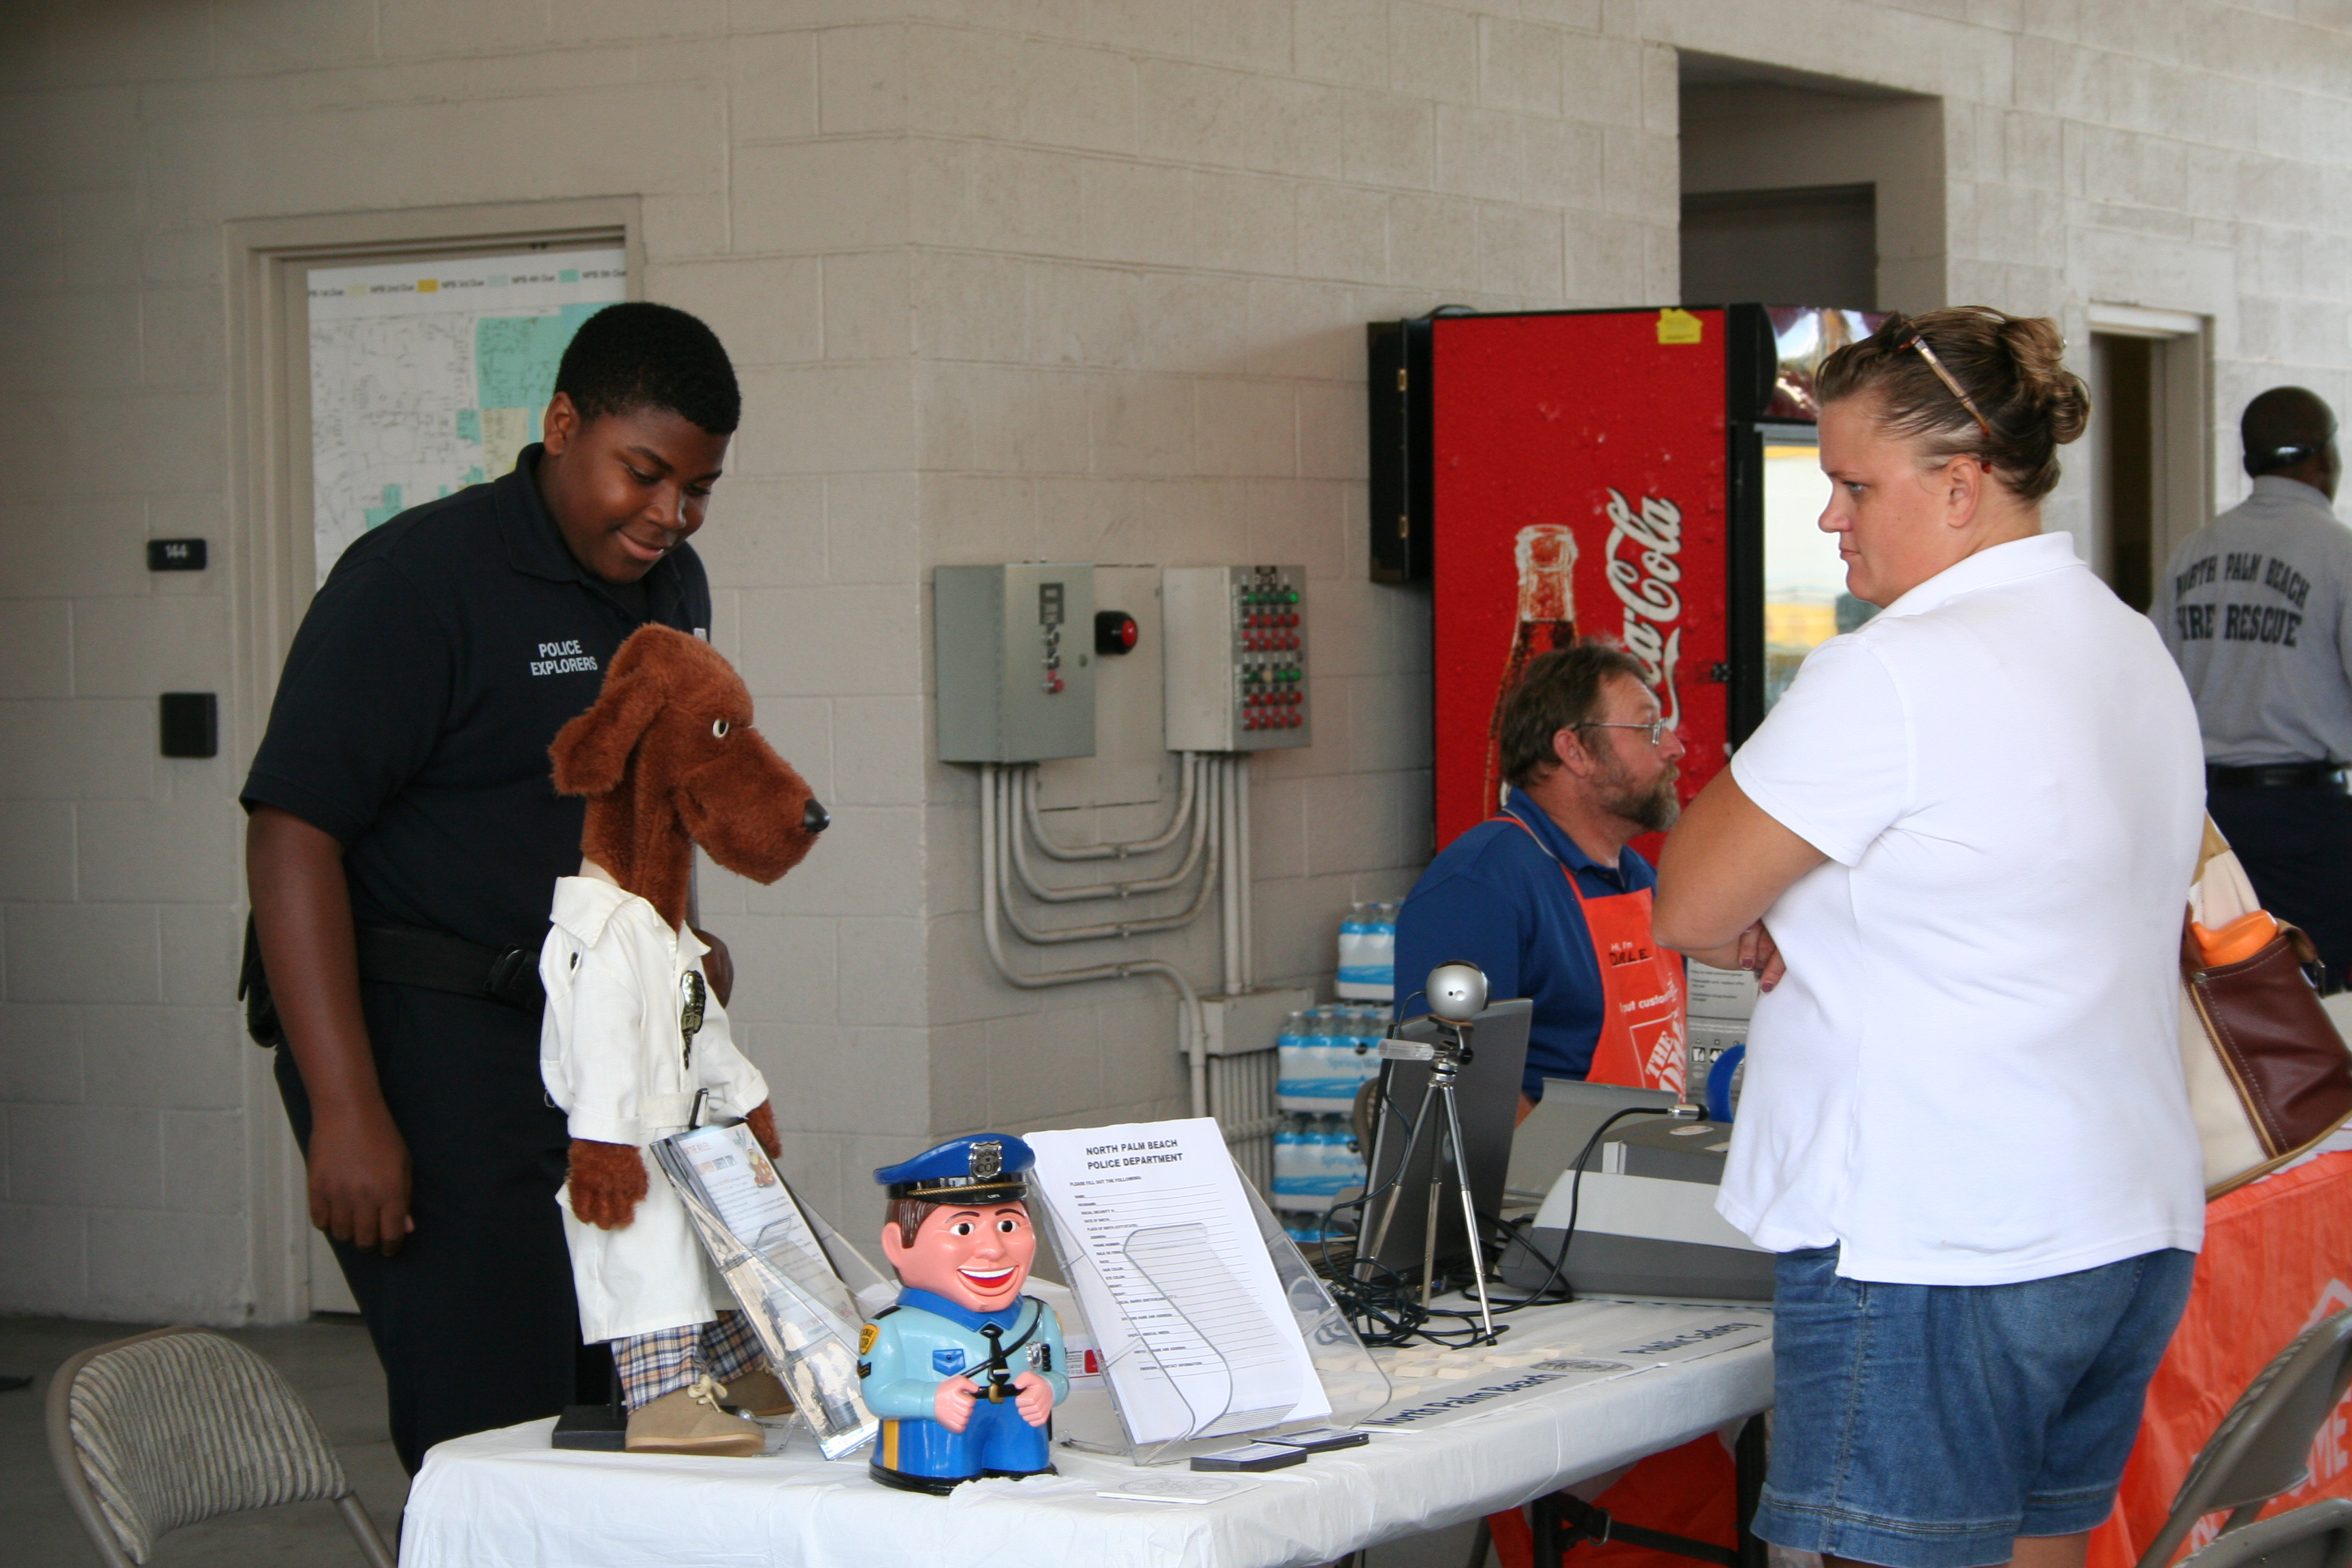 Citizens Visit Informational Booths at the Safety Fair